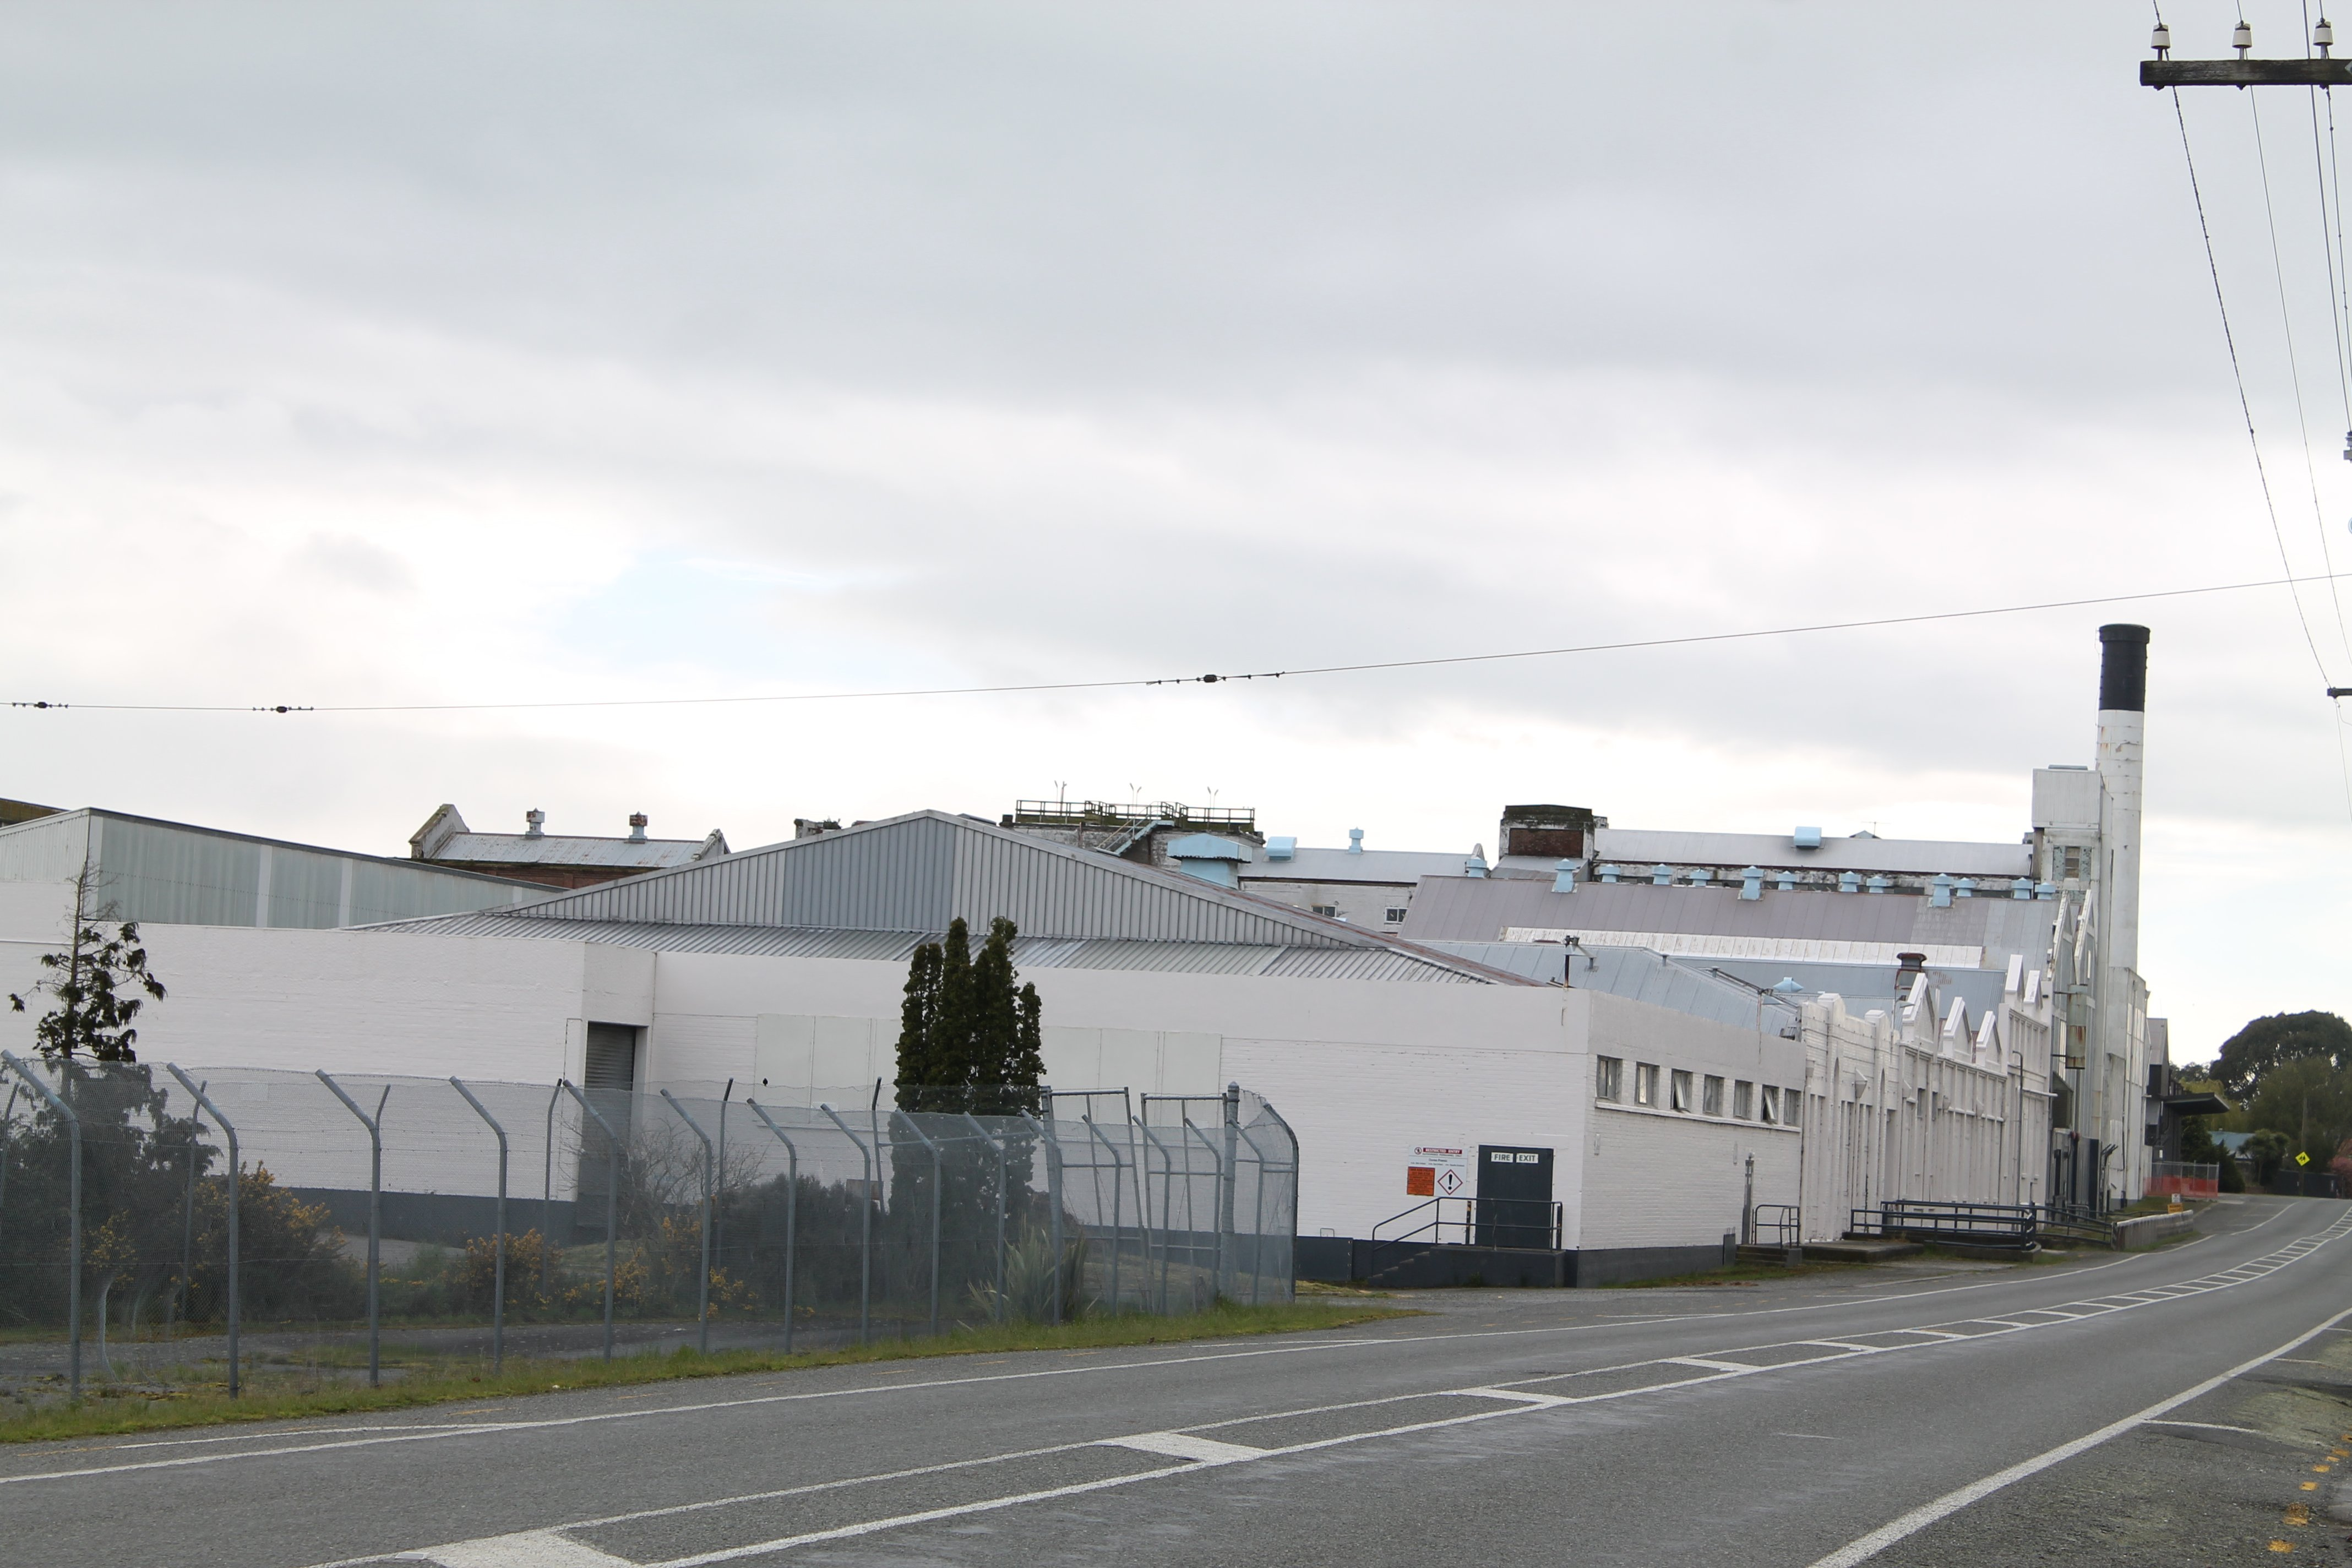 The ouvea premix is being stored at the former Carter Holt Harvey paper mill, located on the...